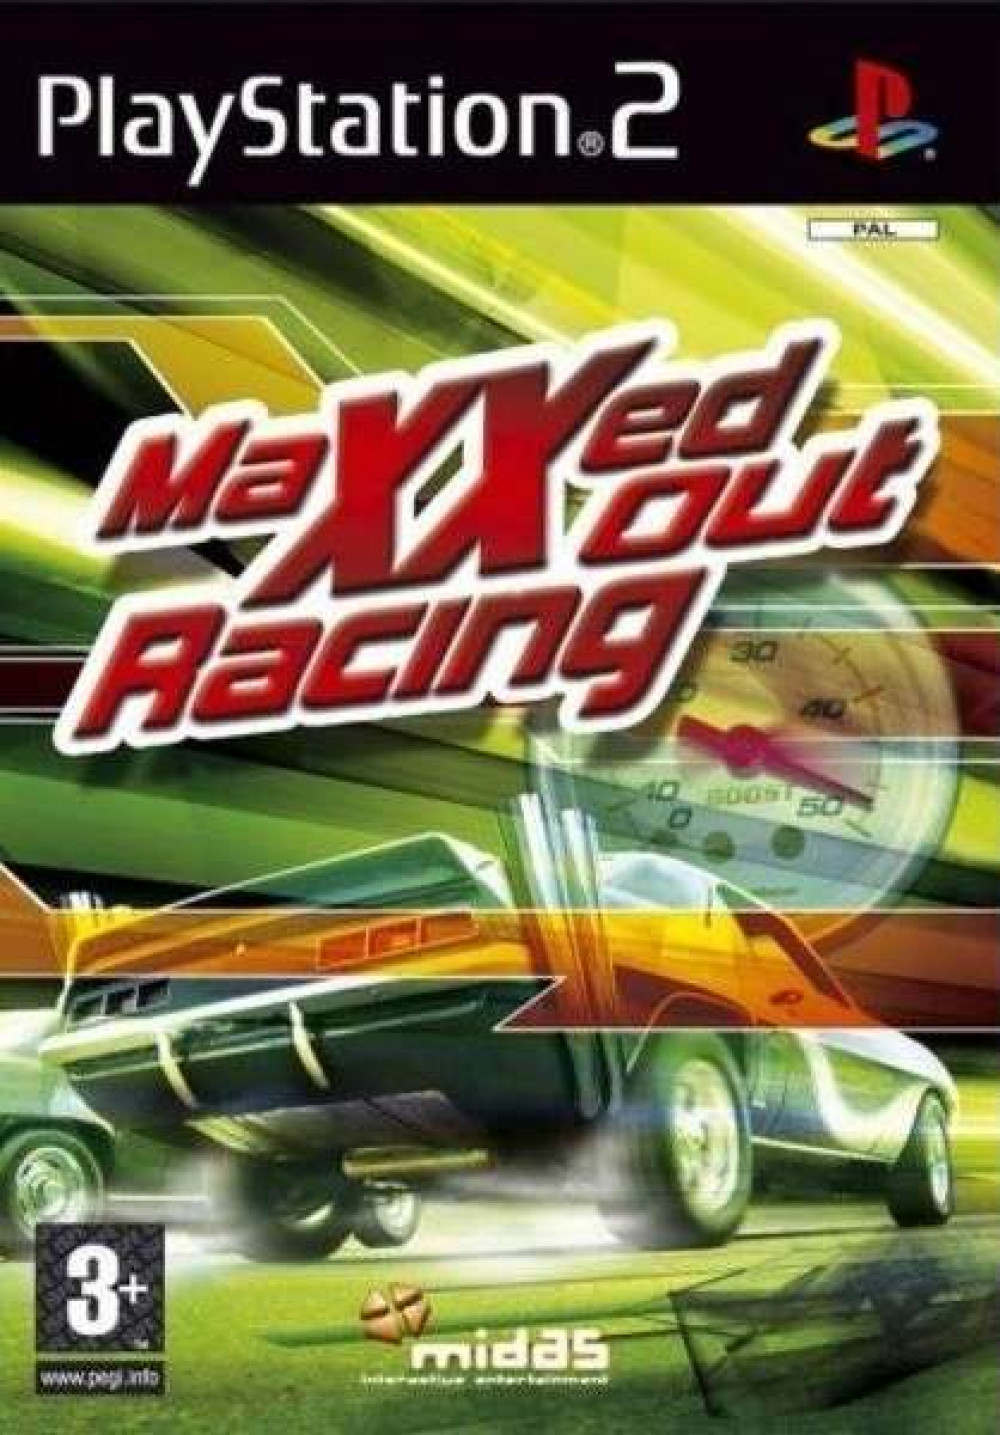 Maxxed Out Racing PS2